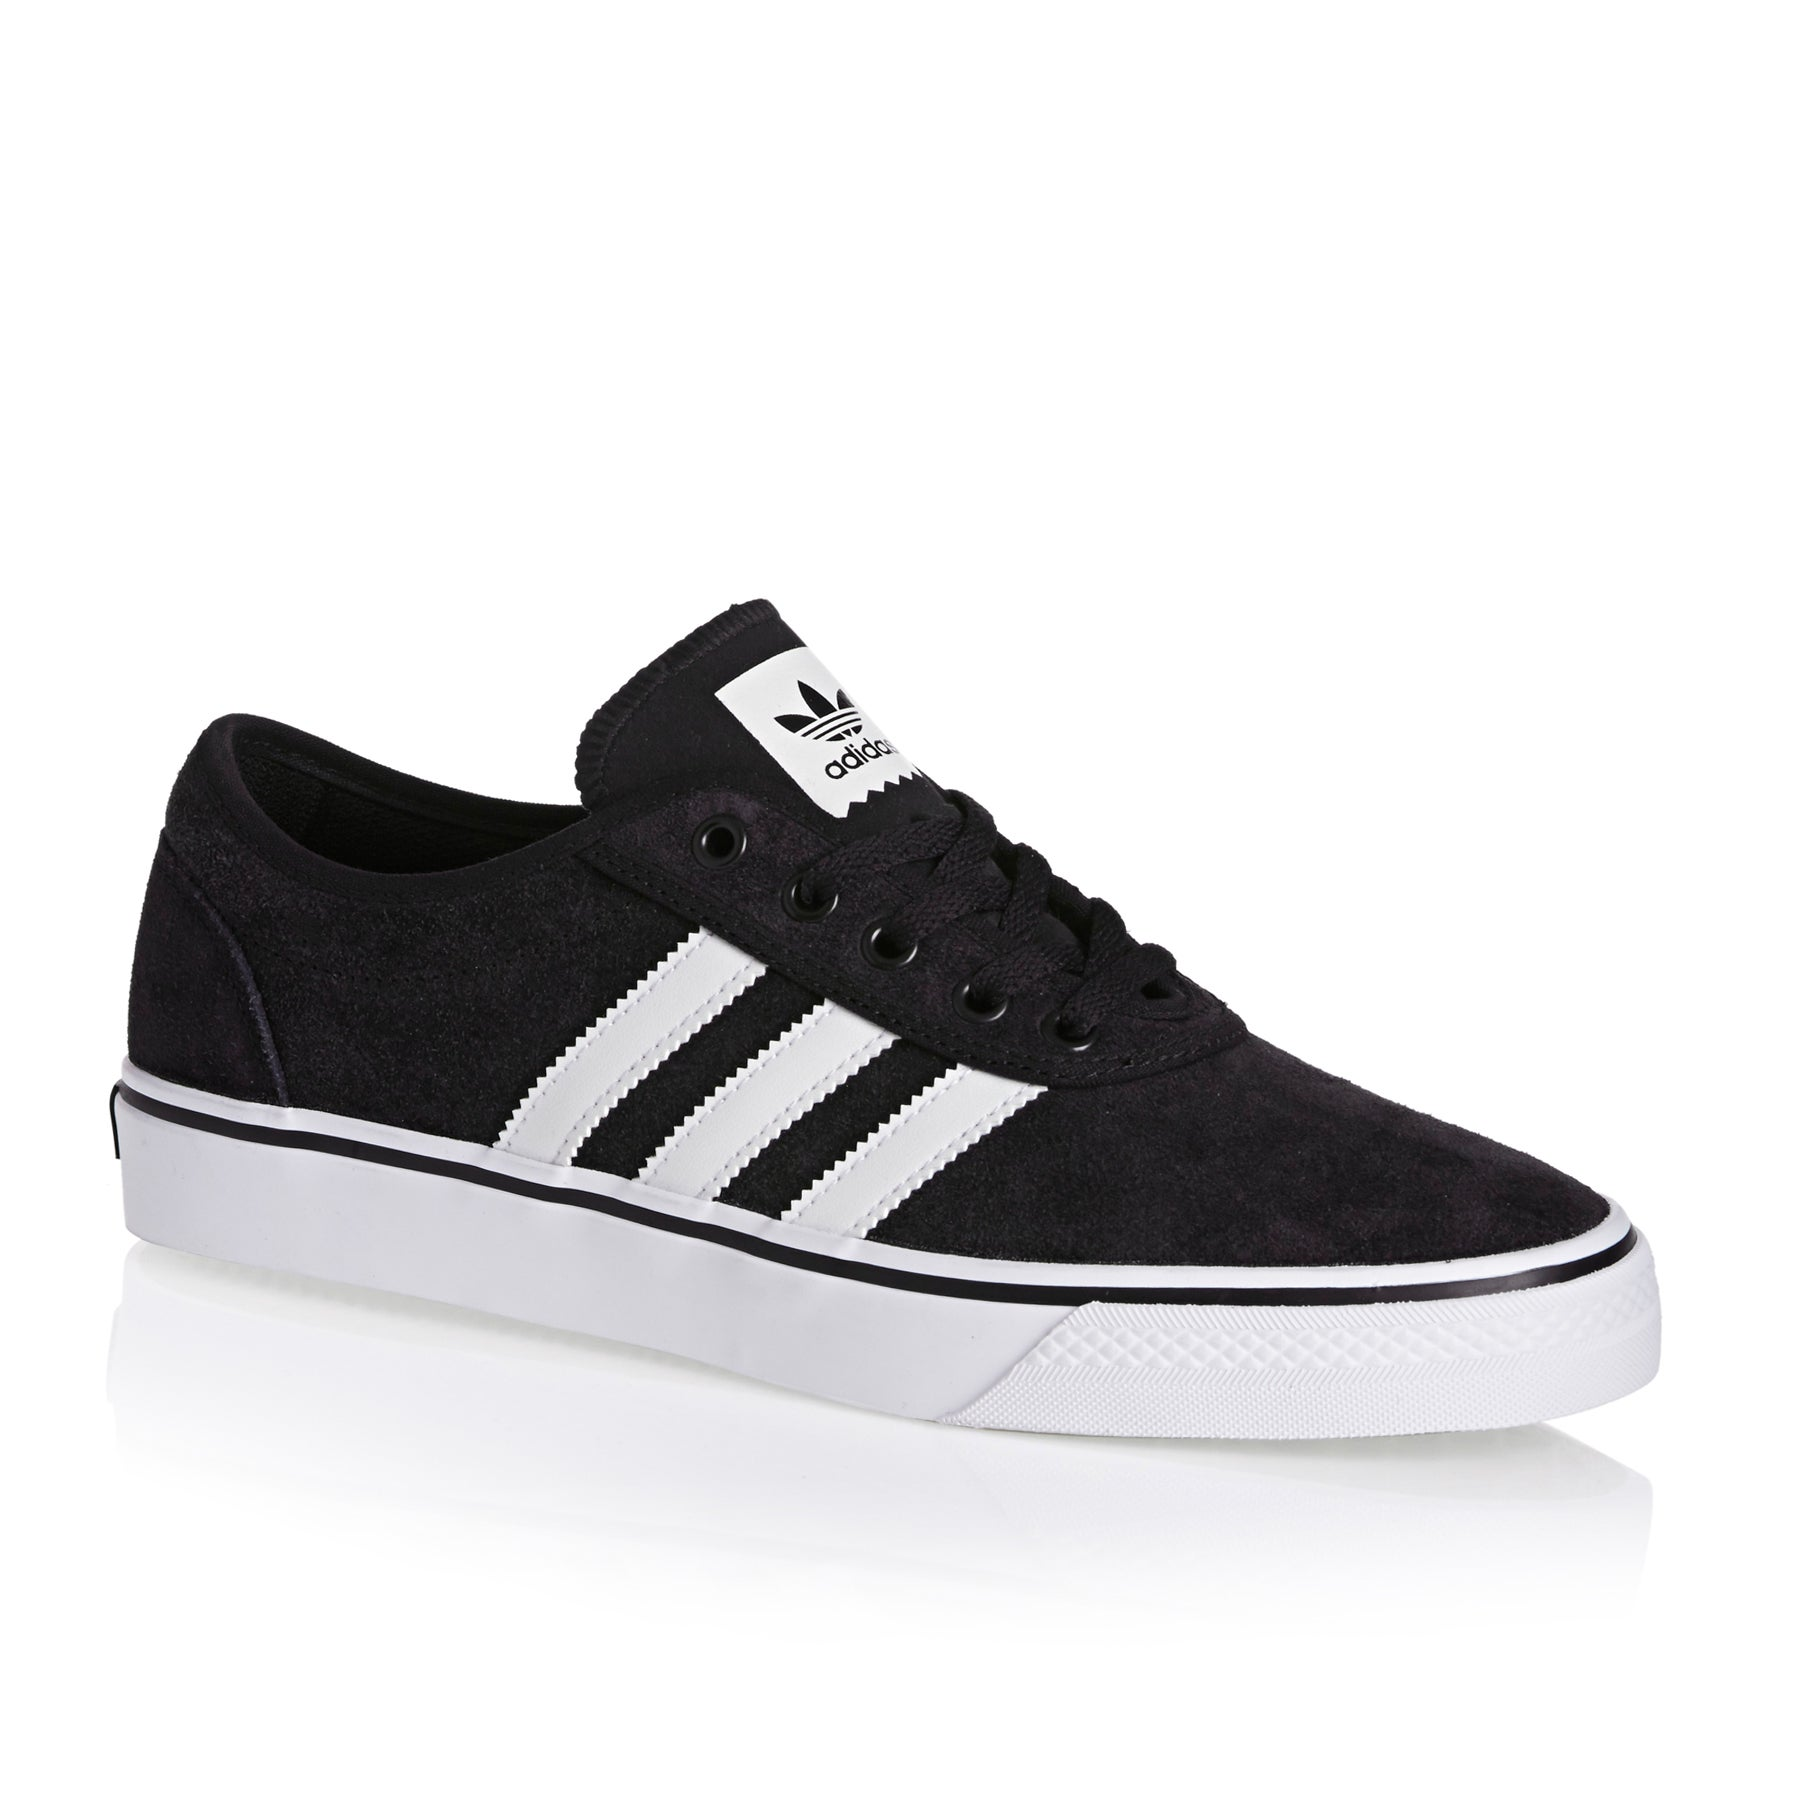 Adidas Originals Adiease Sko - Core Black White